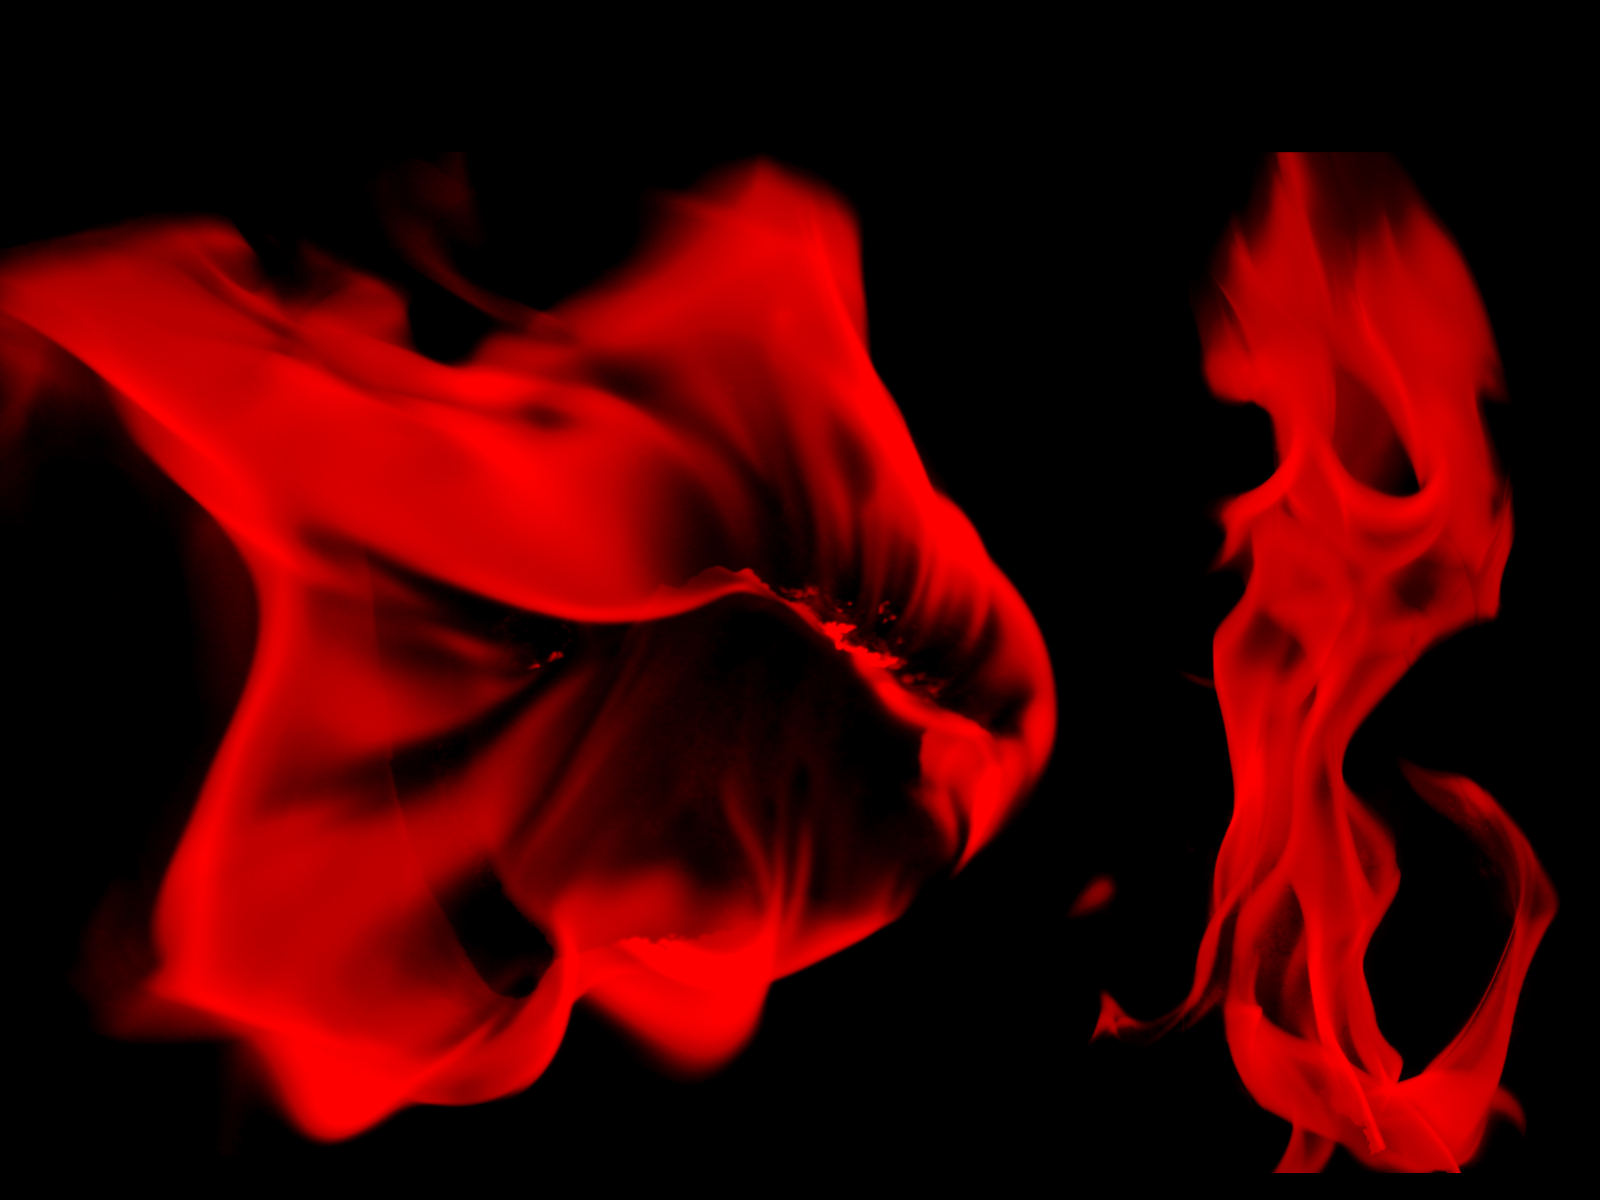 Wallpaper 41 Flame Red and Black Wallpapers 1600x1200